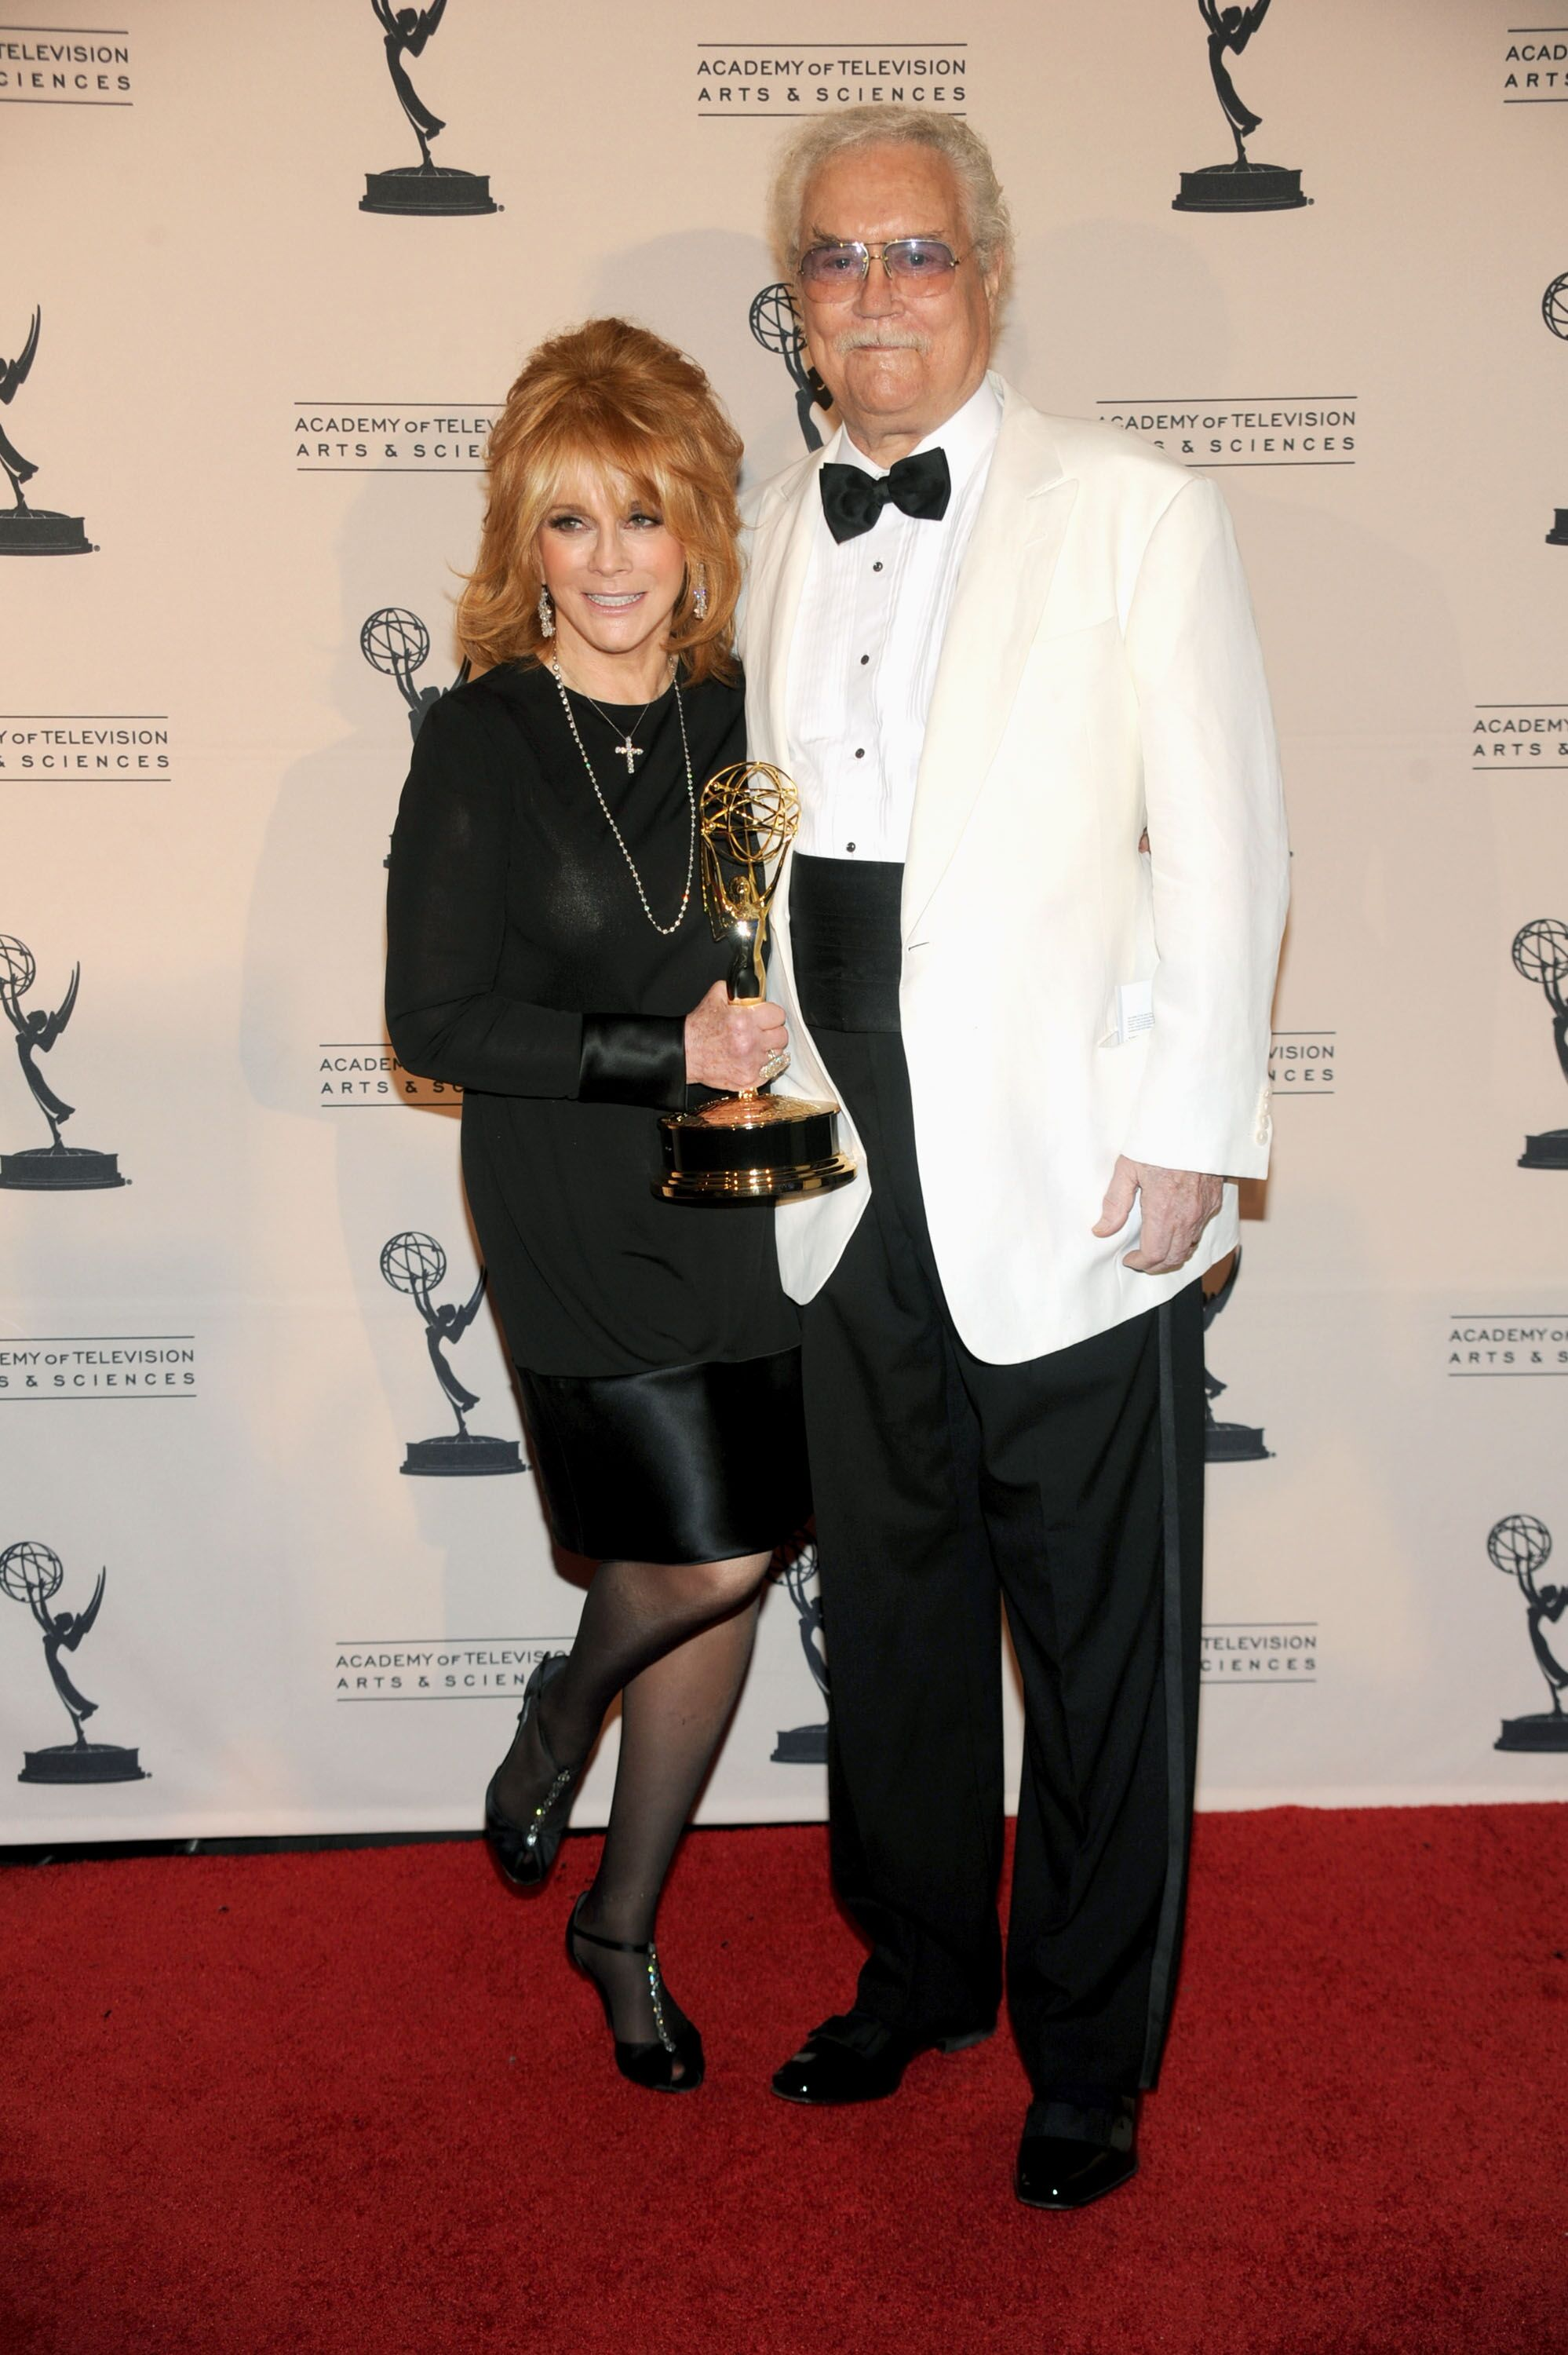 Ann-Margret and Roger Smith at the Primetime Creative Arts Emmy Awards. | Source: Getty Images